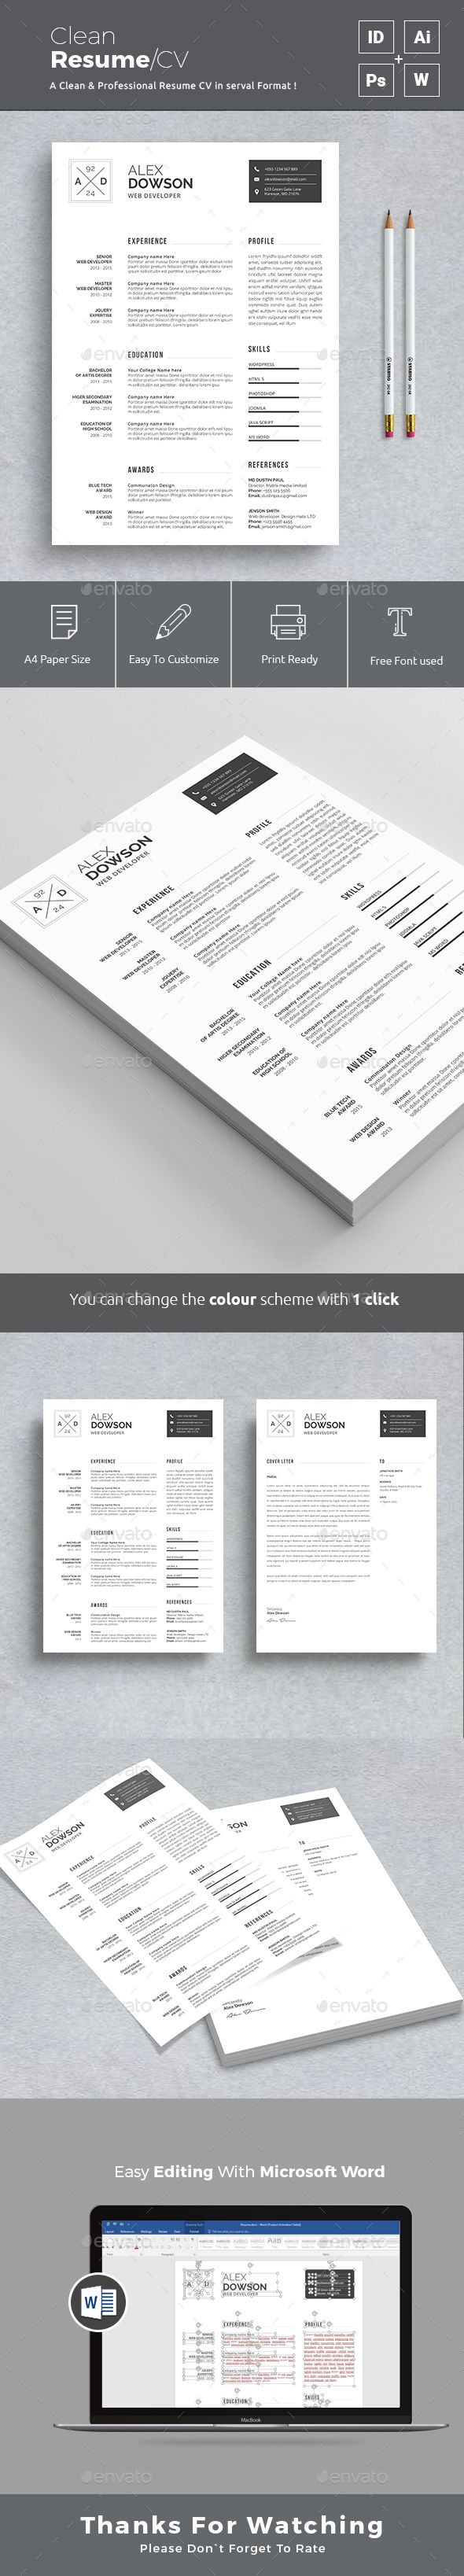 Resume 599 best CvResumesPortfolio images on Pinterest